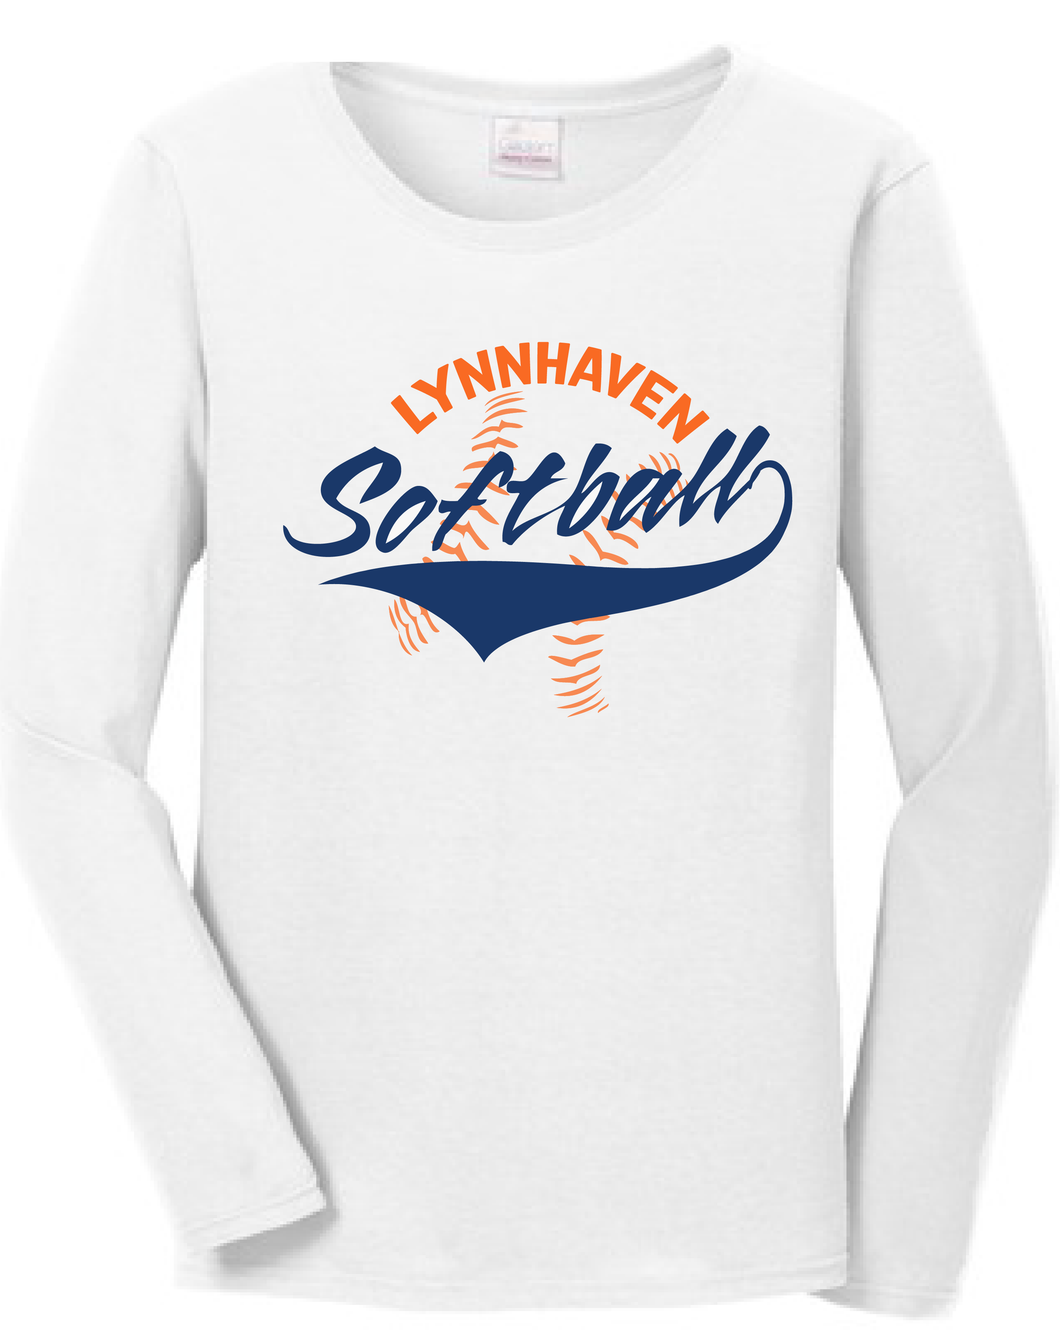 Lynnhaven Softball Long Sleeve Shirt - Fidgety